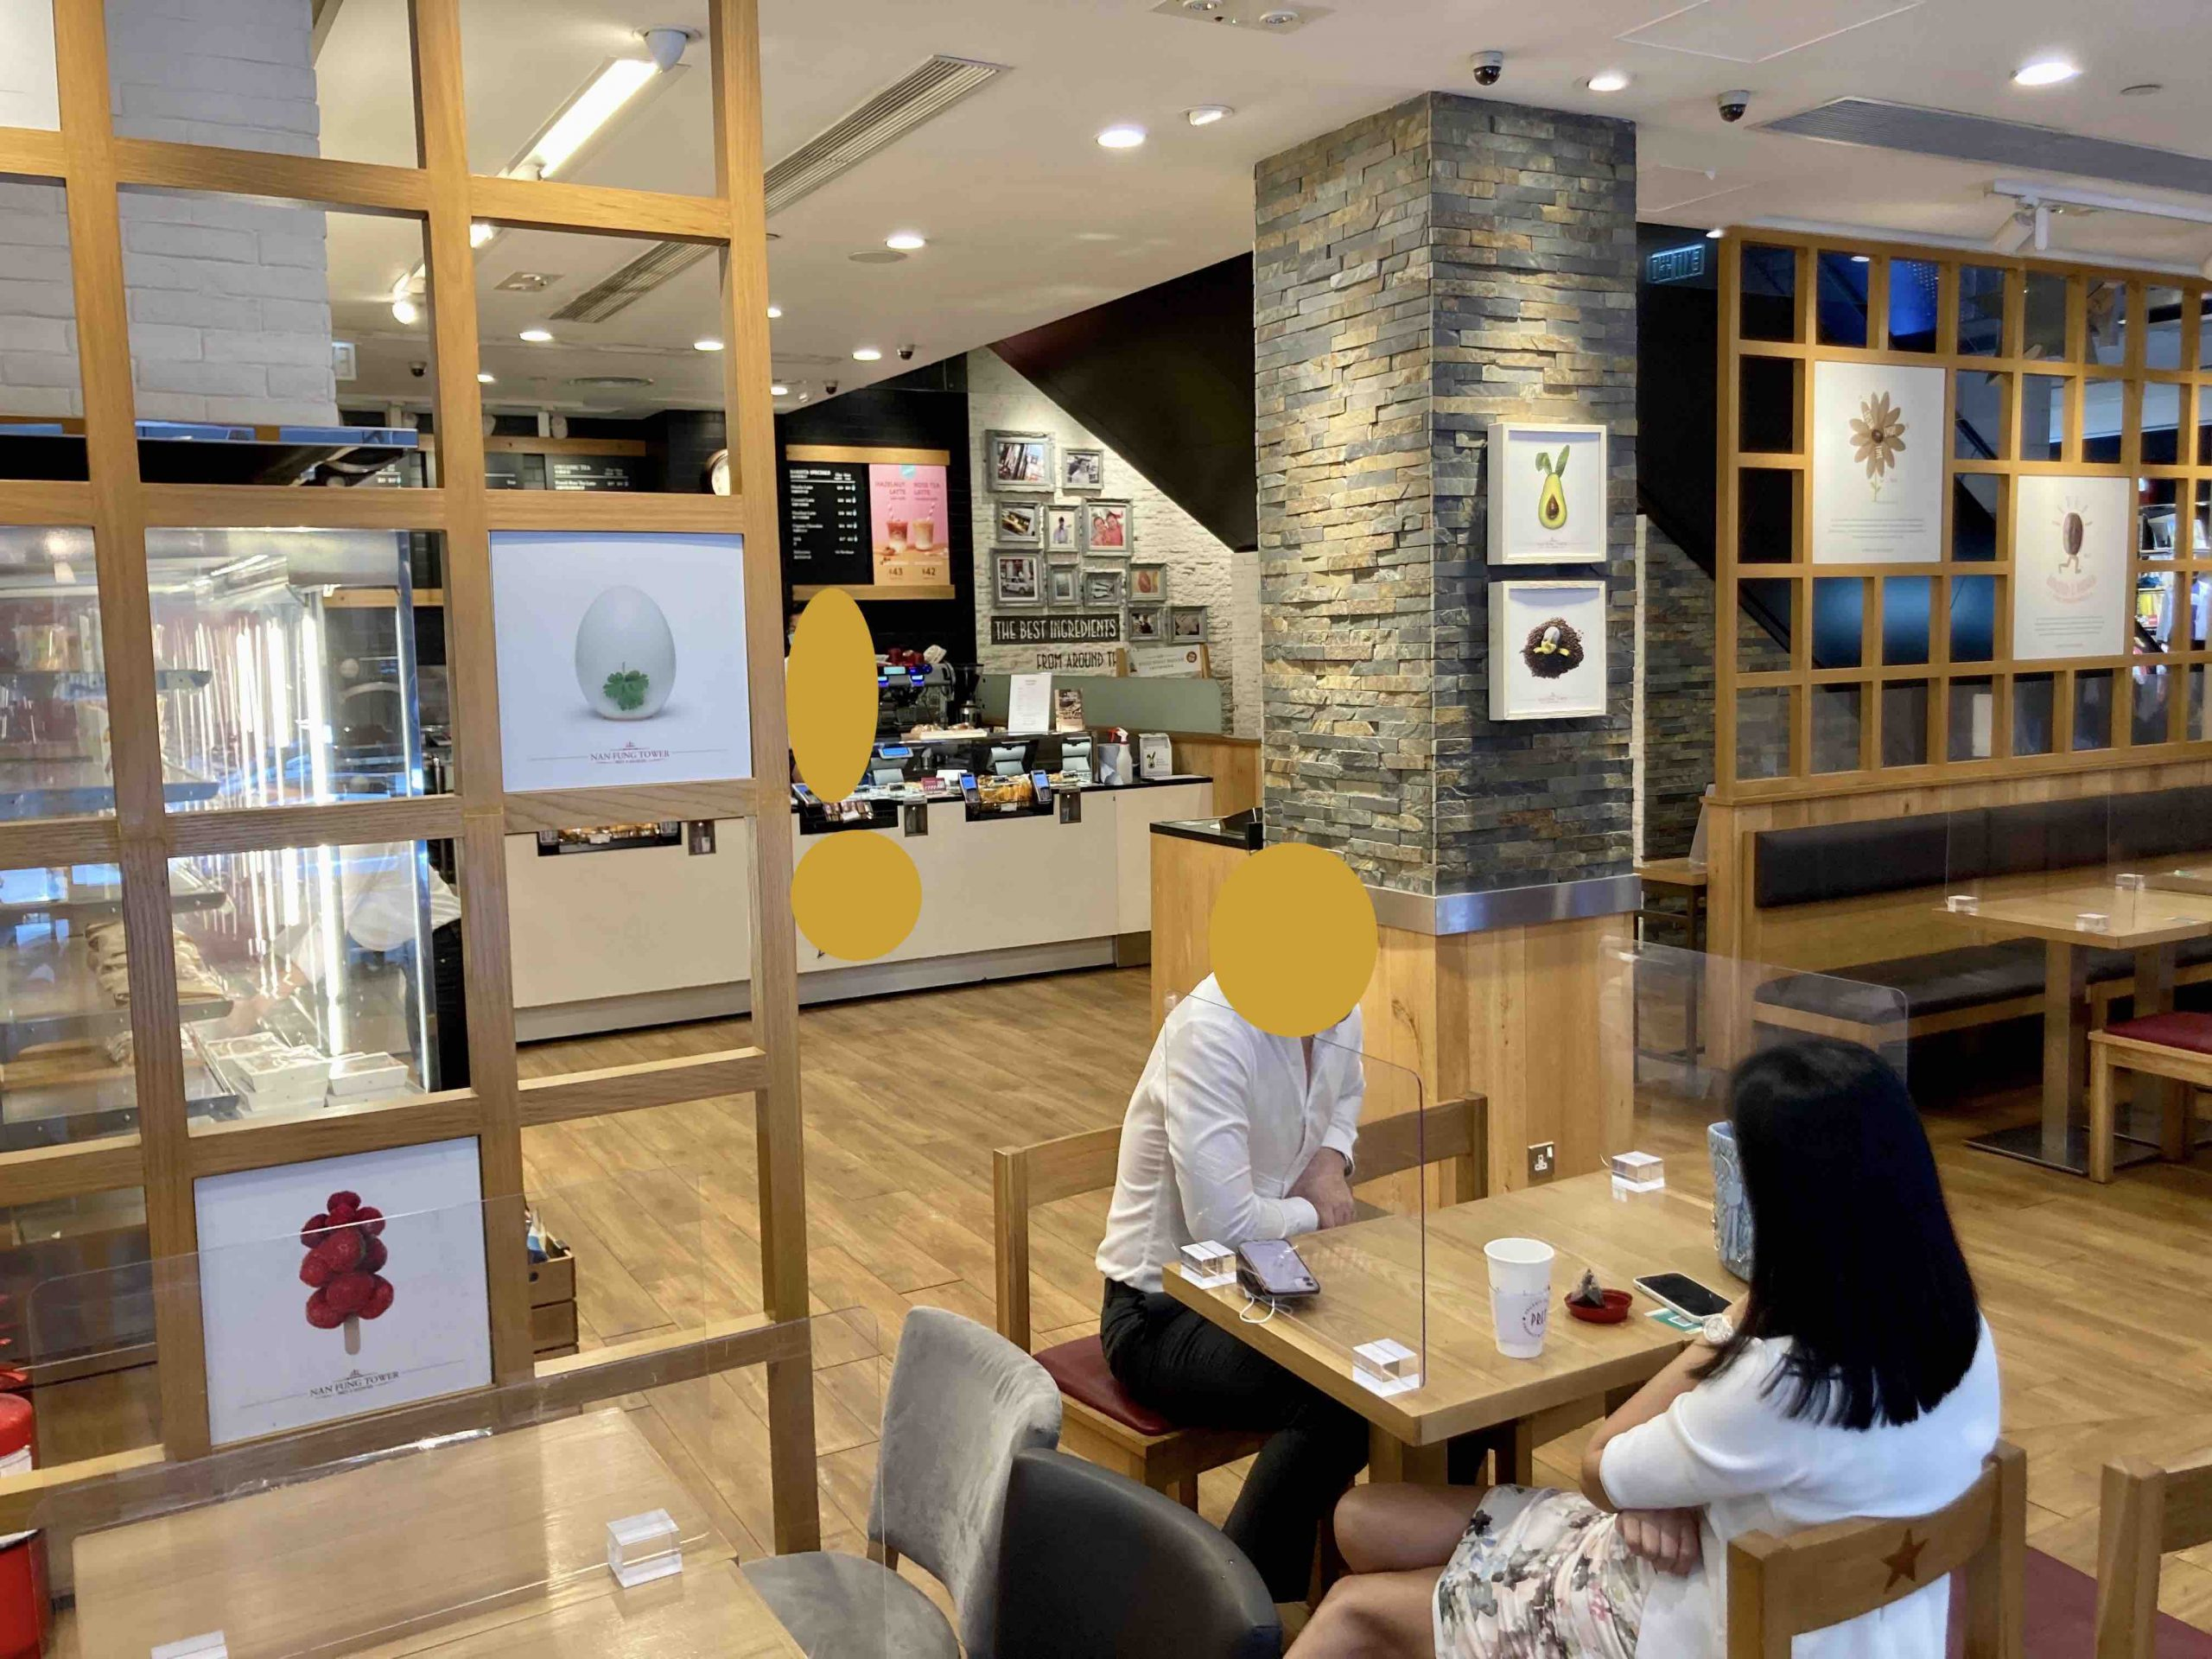 Office District Restaurant for Rent in Central HK